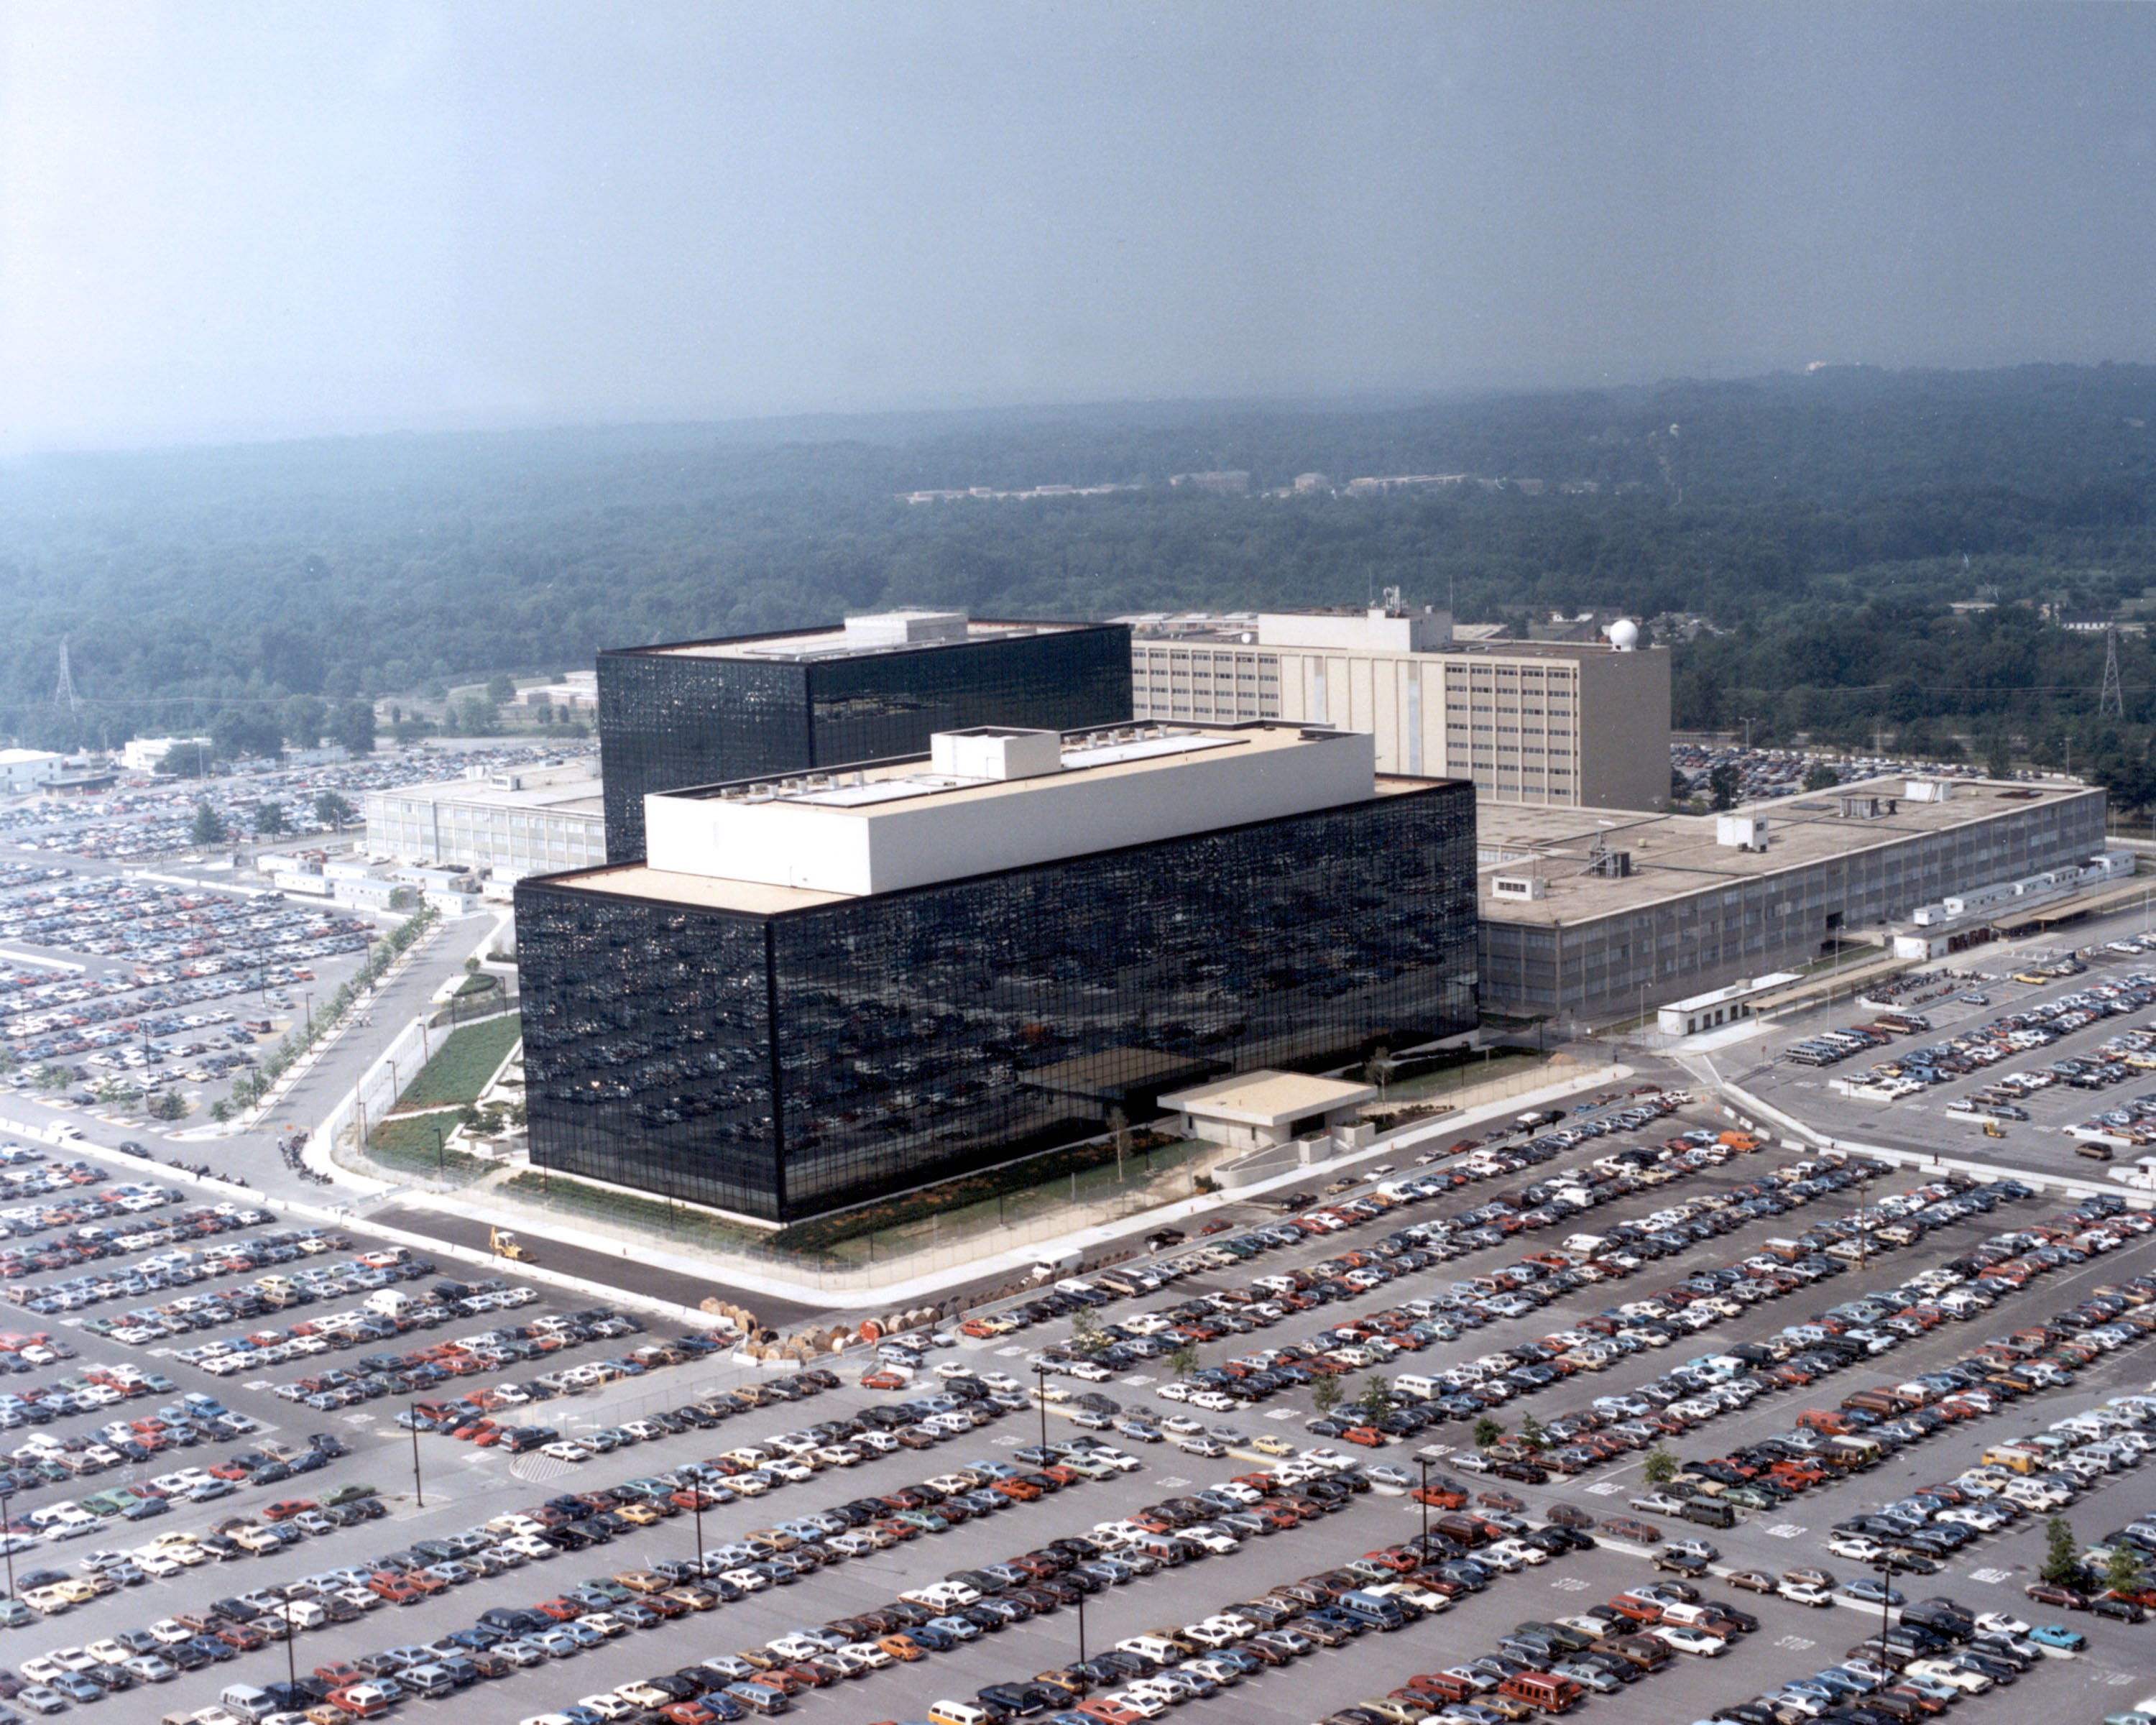 The National Security Agency (NSA) headquarters in Fort Meade, Md.